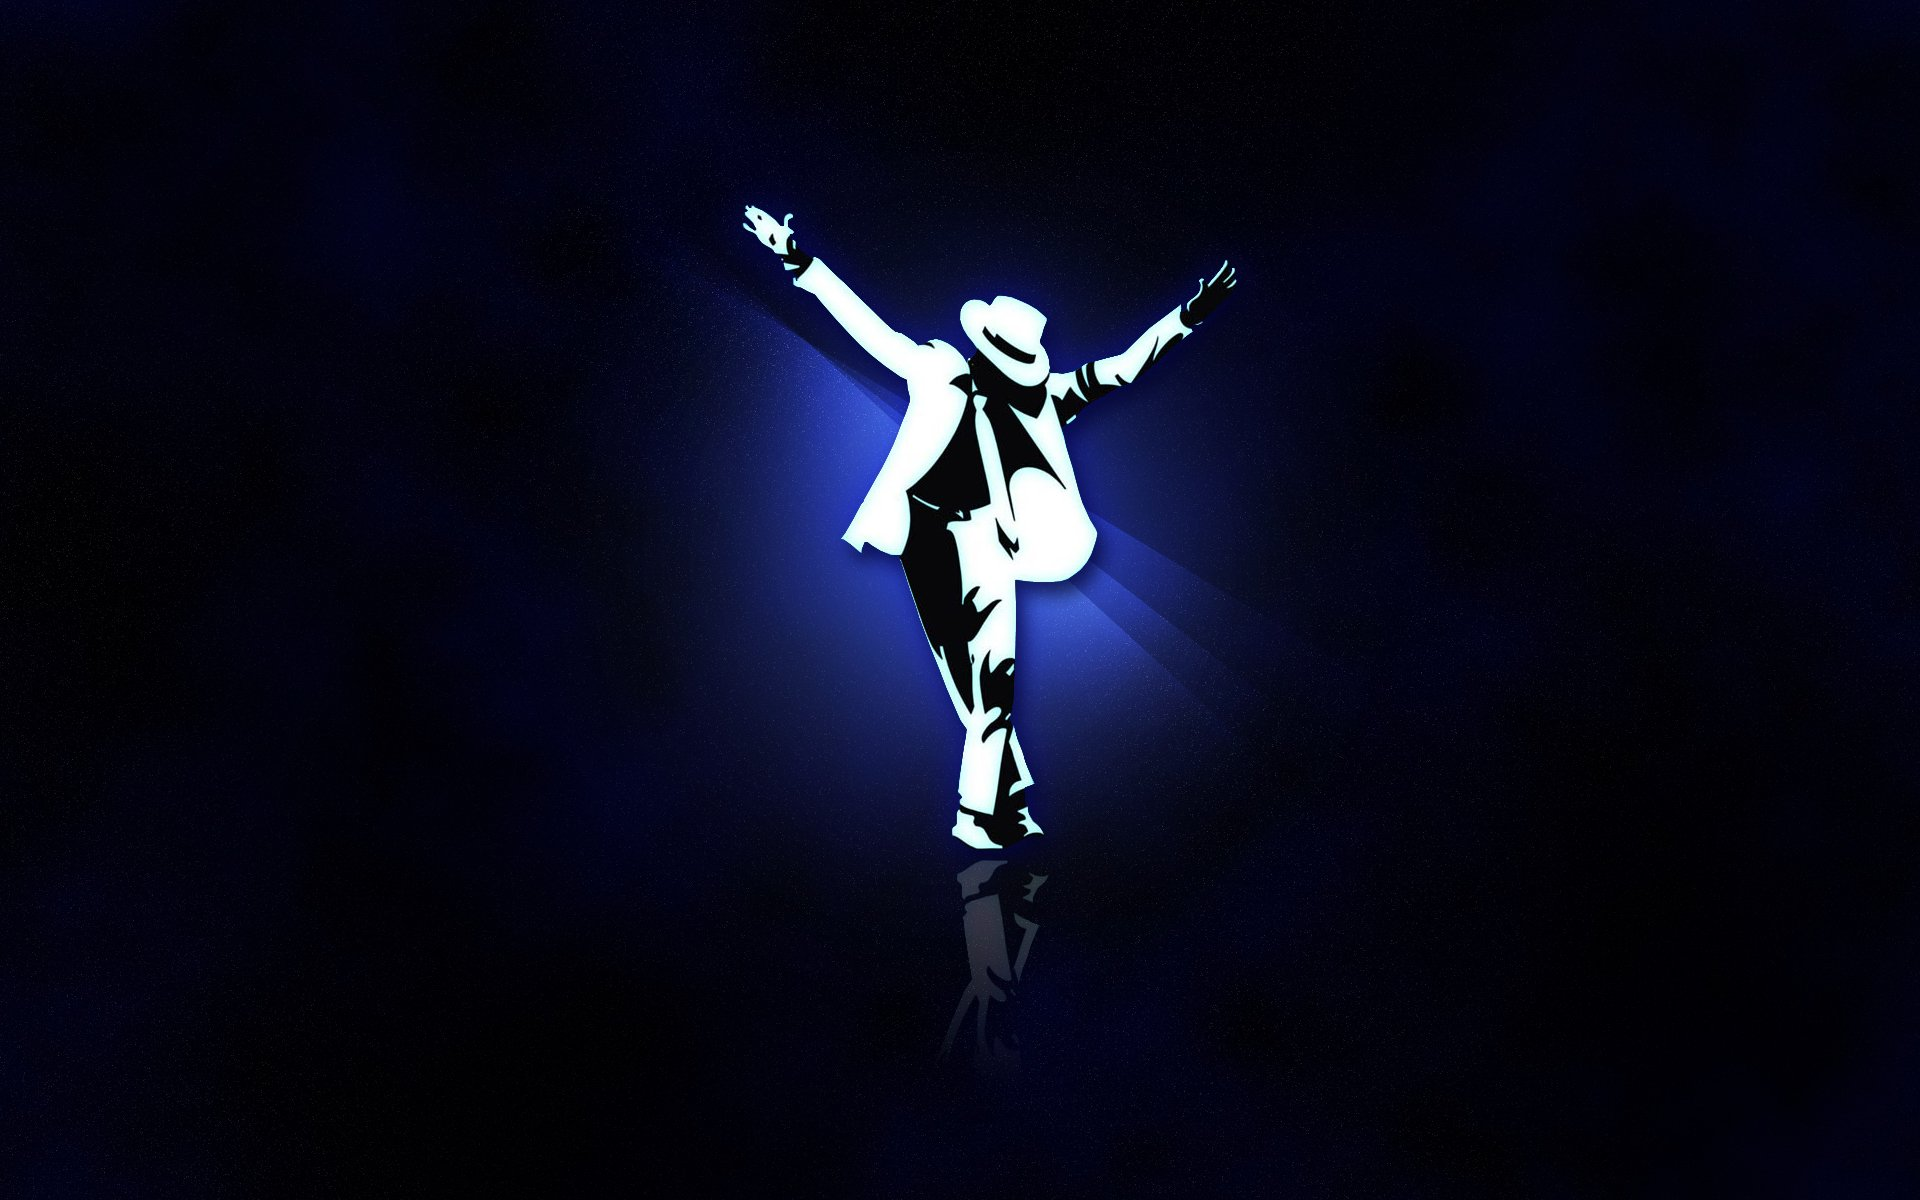 HD Wallpapers Tribute To Michael Jackson